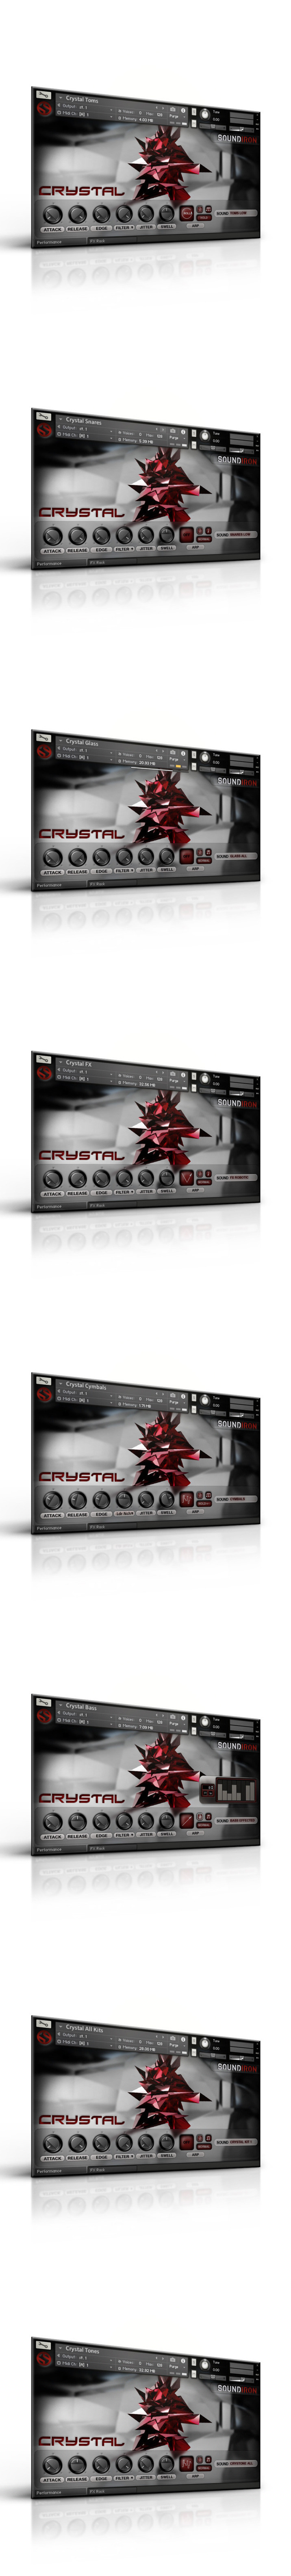 soundiron_crystal_kontakt_pc_mac